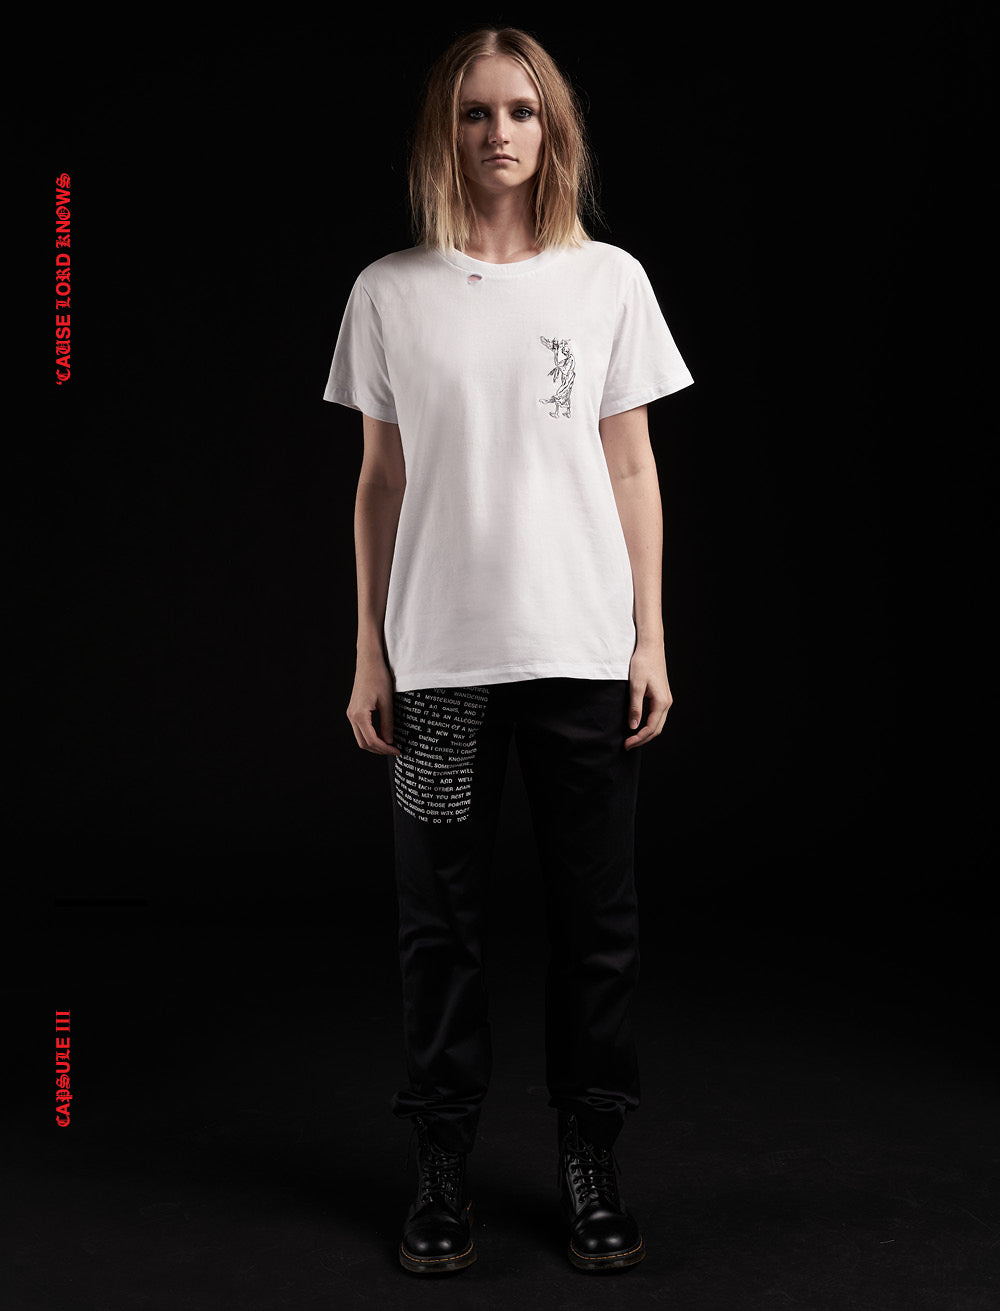 DEATH PATCH T_SHIRT [WHITE] // RIPPED COLLAR